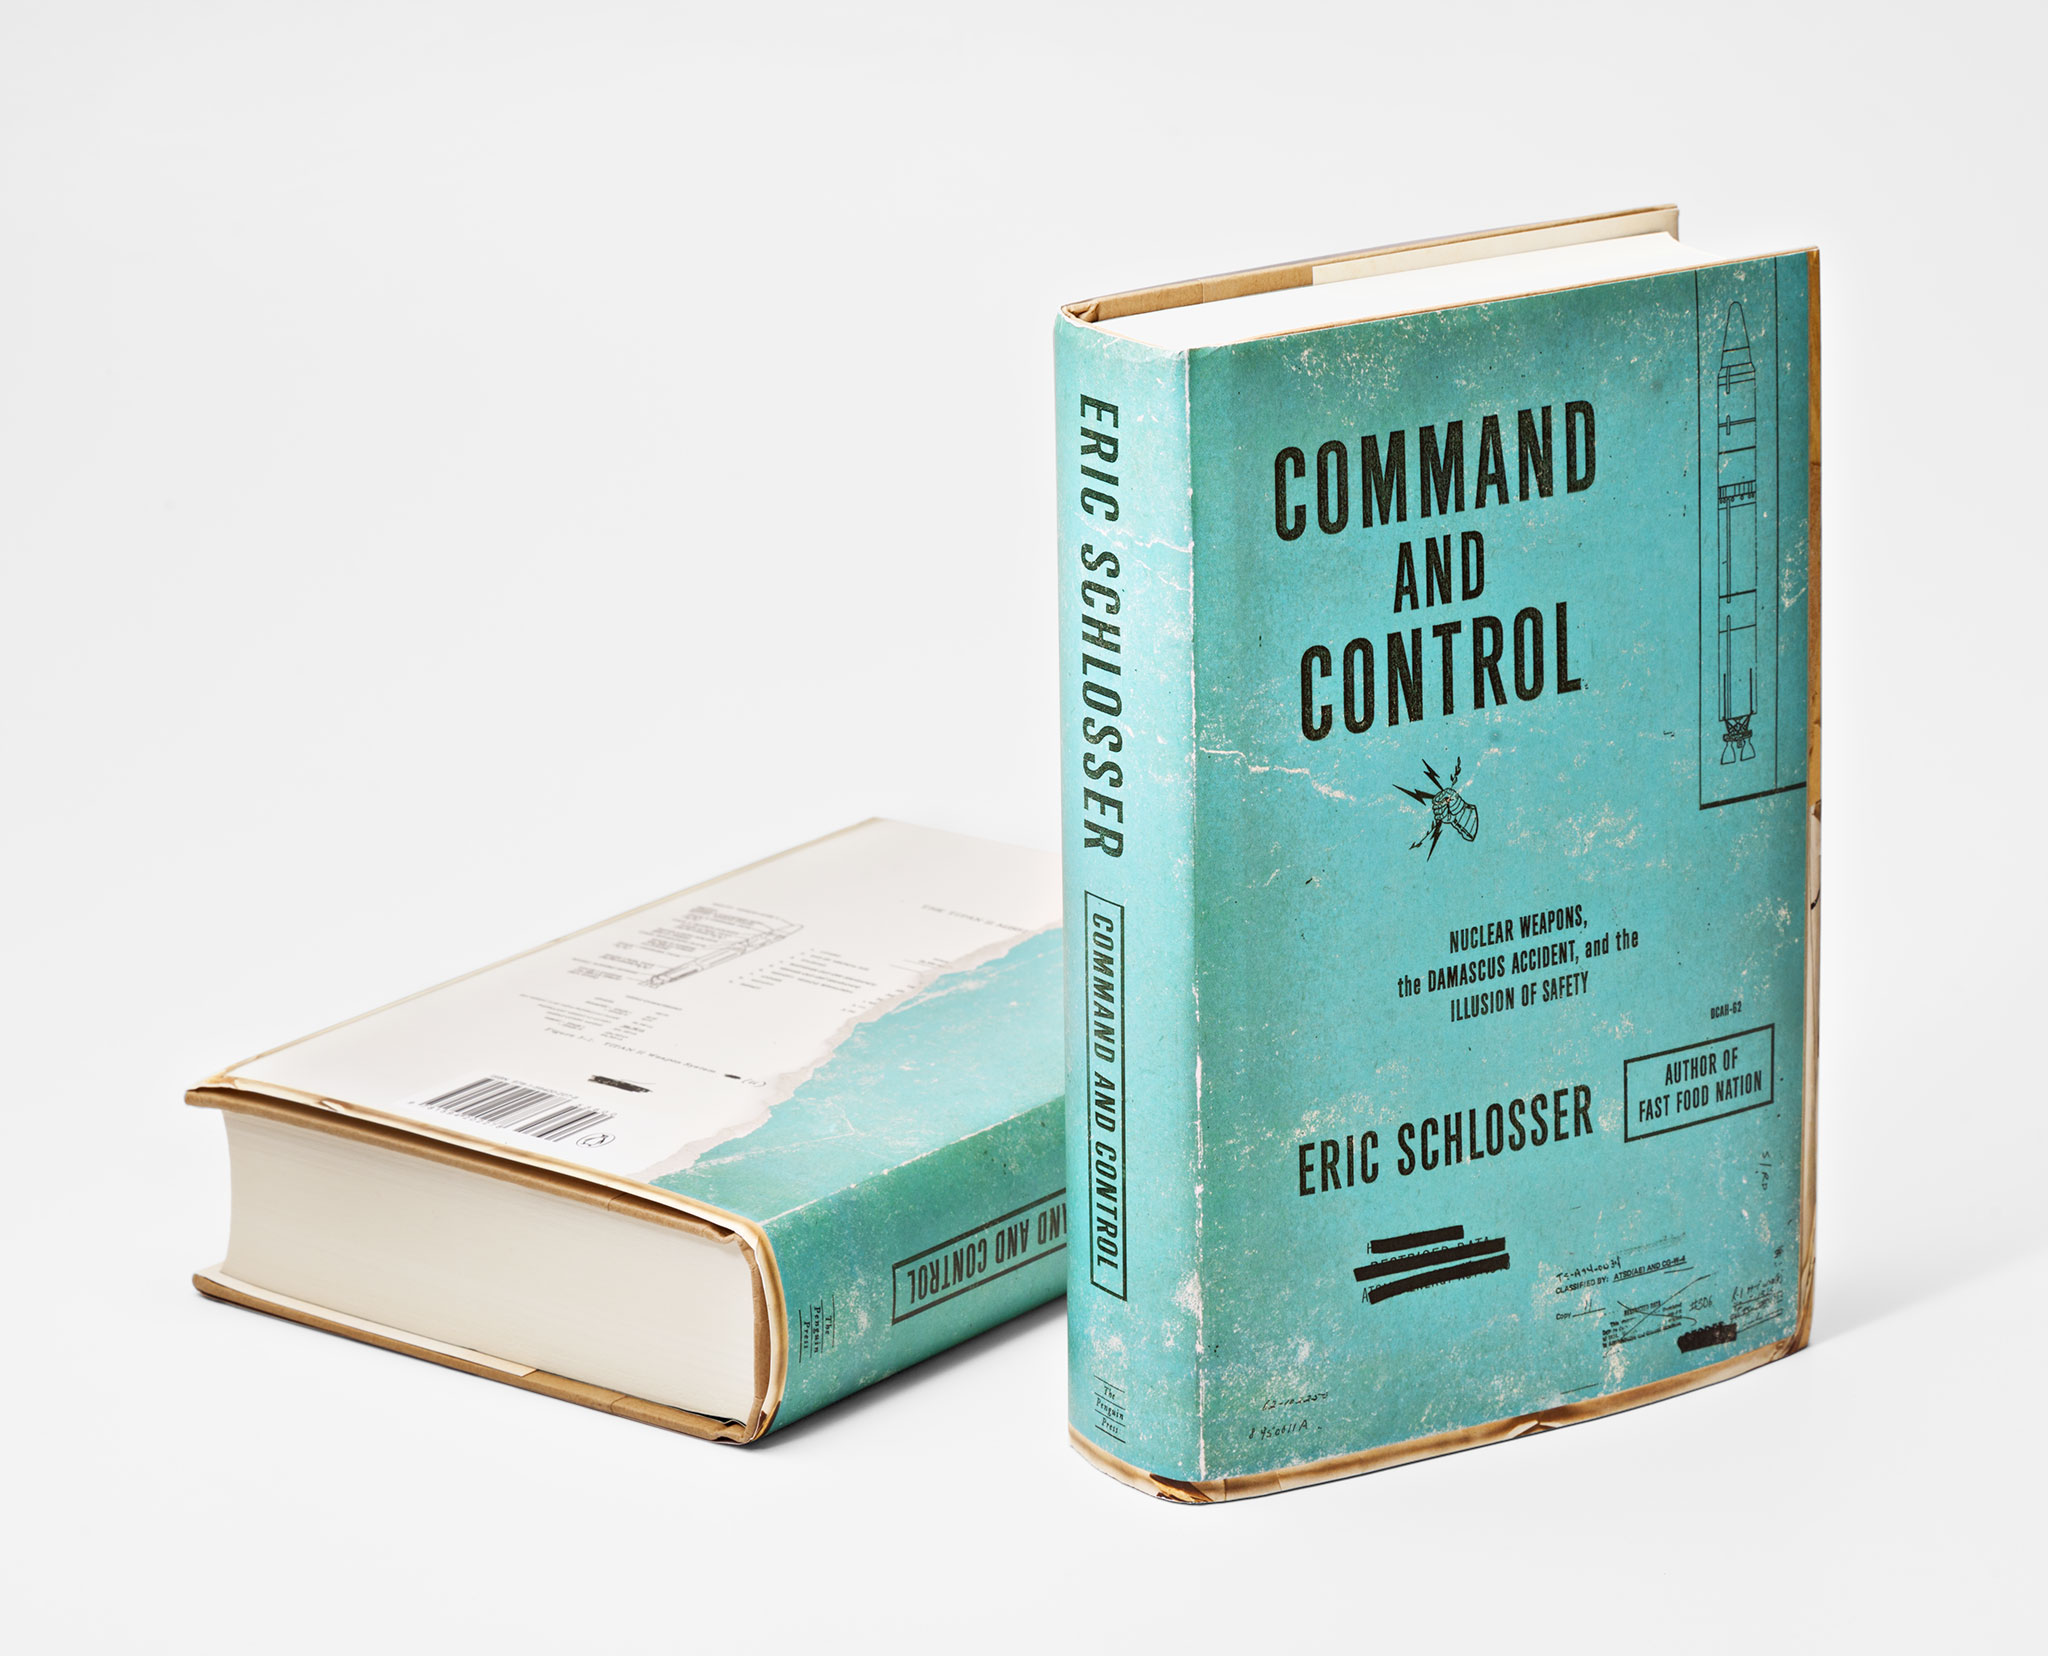 eric-schlosser-command-and-control-cover